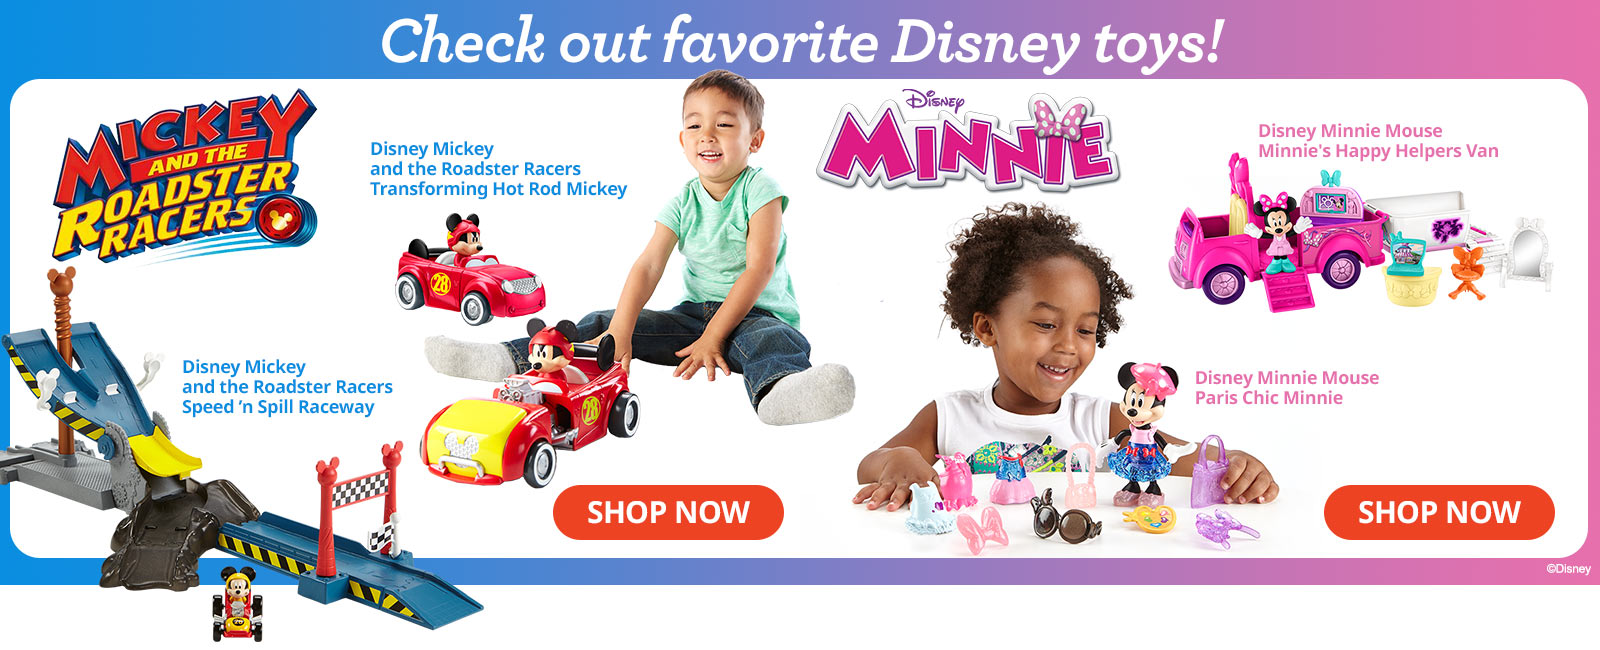 Check out favorite Disney toys!